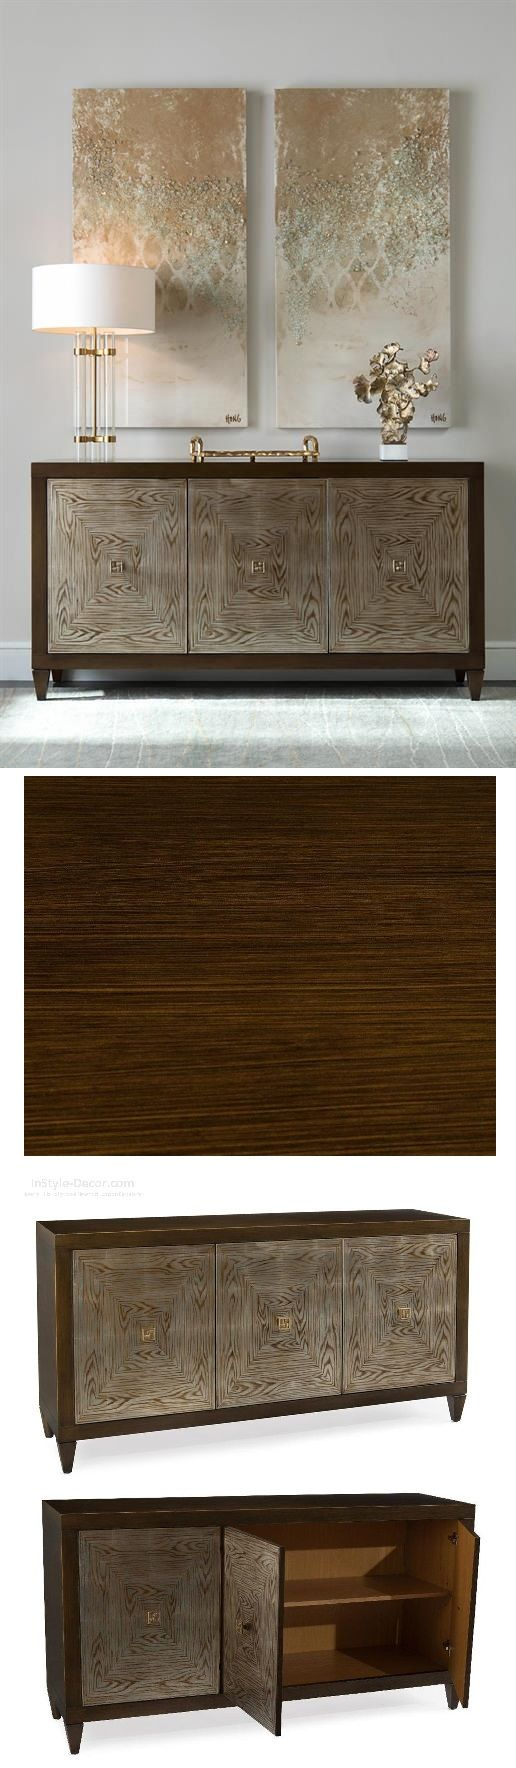 Buffet | Buffet Furniture | Buffets | Sideboard | Sideboards | Credenza |  Credenzas | Hotel